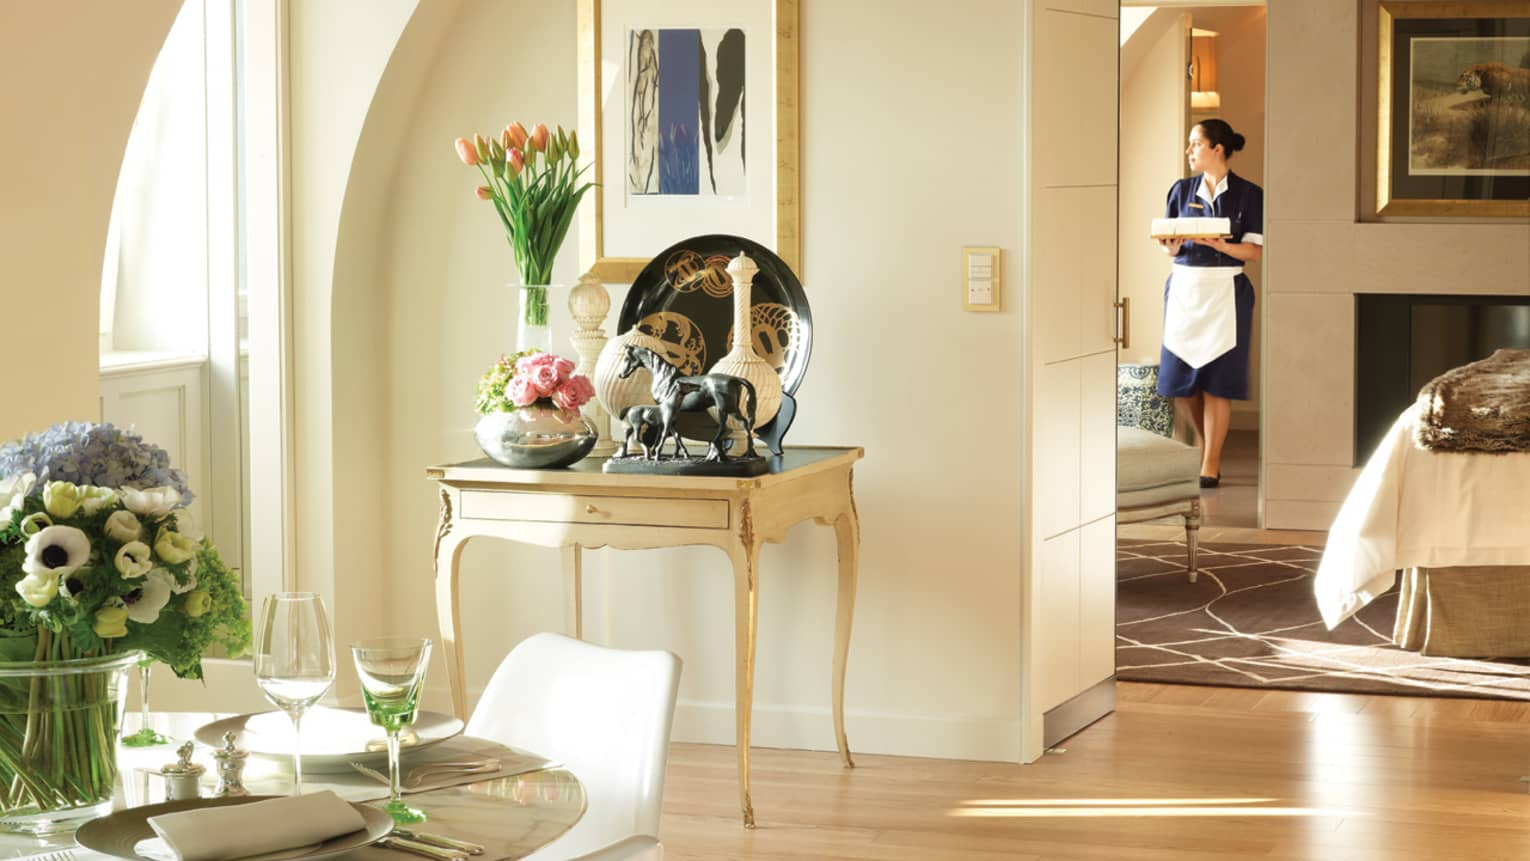 Presidential Suite Loft sunny table with fresh flowers, horse statue, vases, hotel staff walks by bed in background